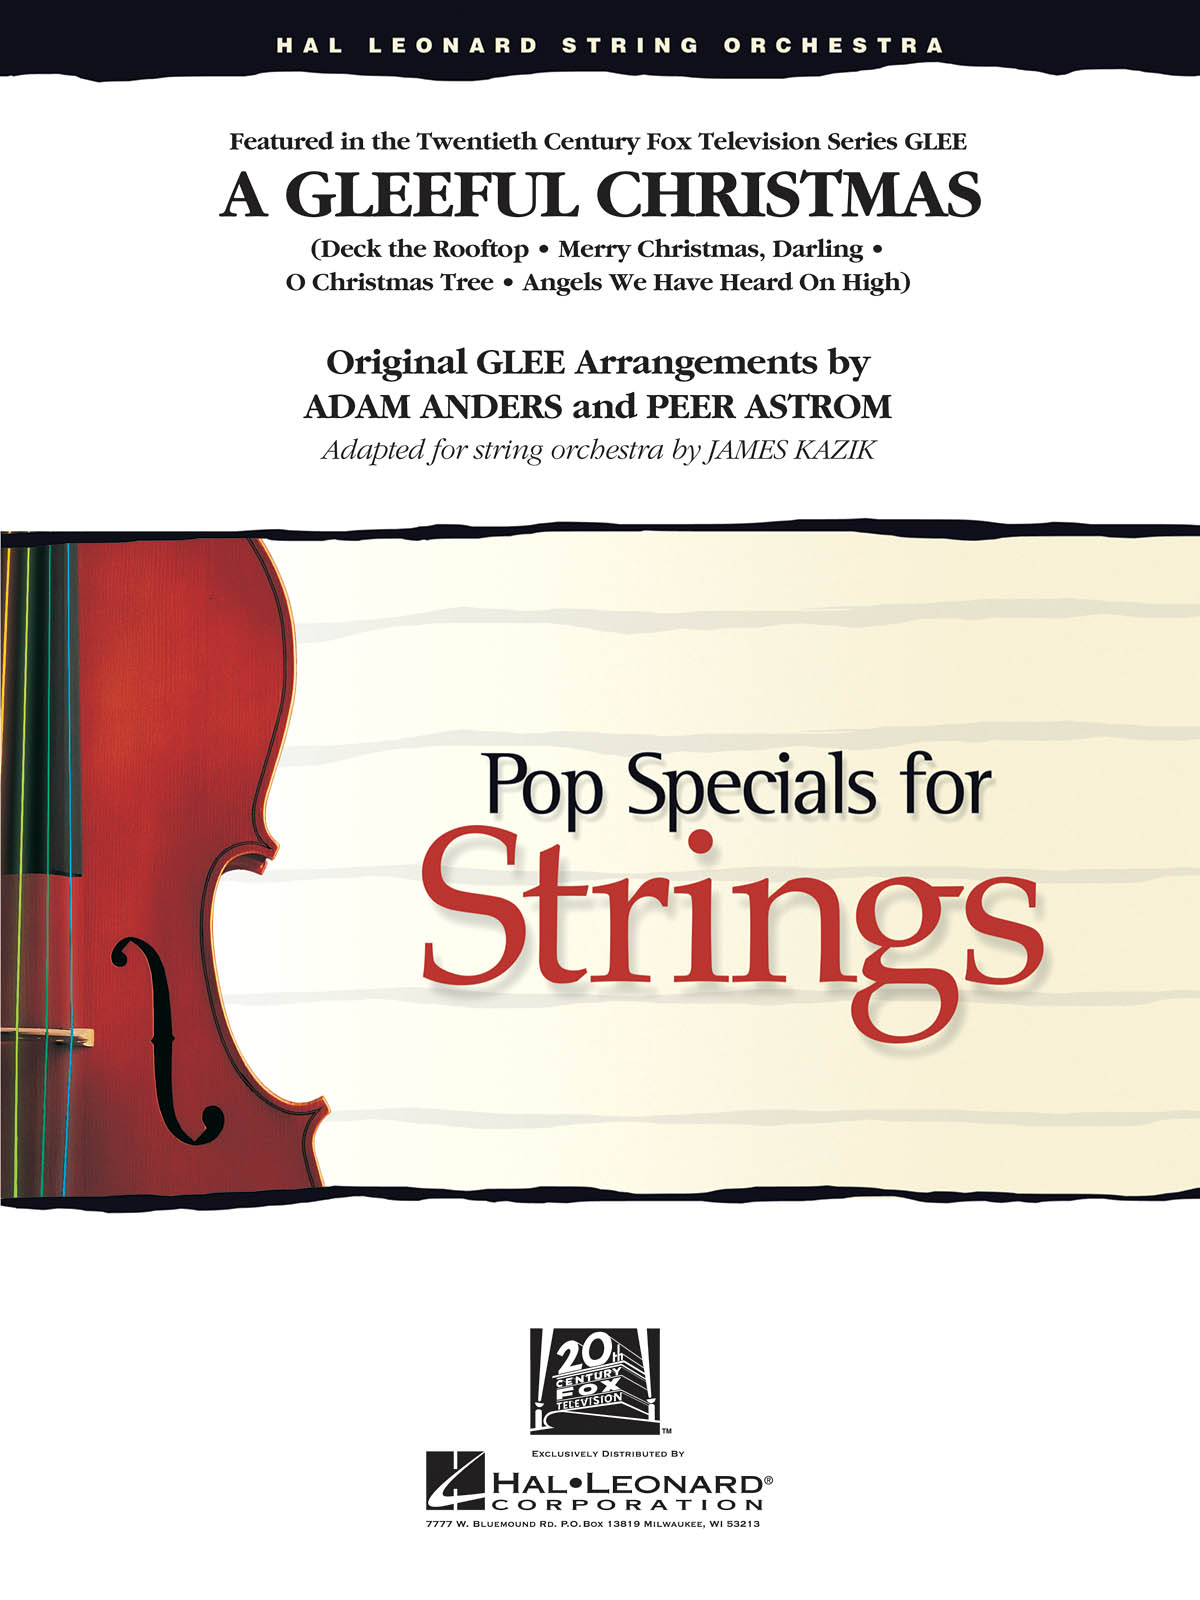 A Gleeful Christmas (Incl.: Deck the Rooftop): String Ensemble: Score & Parts